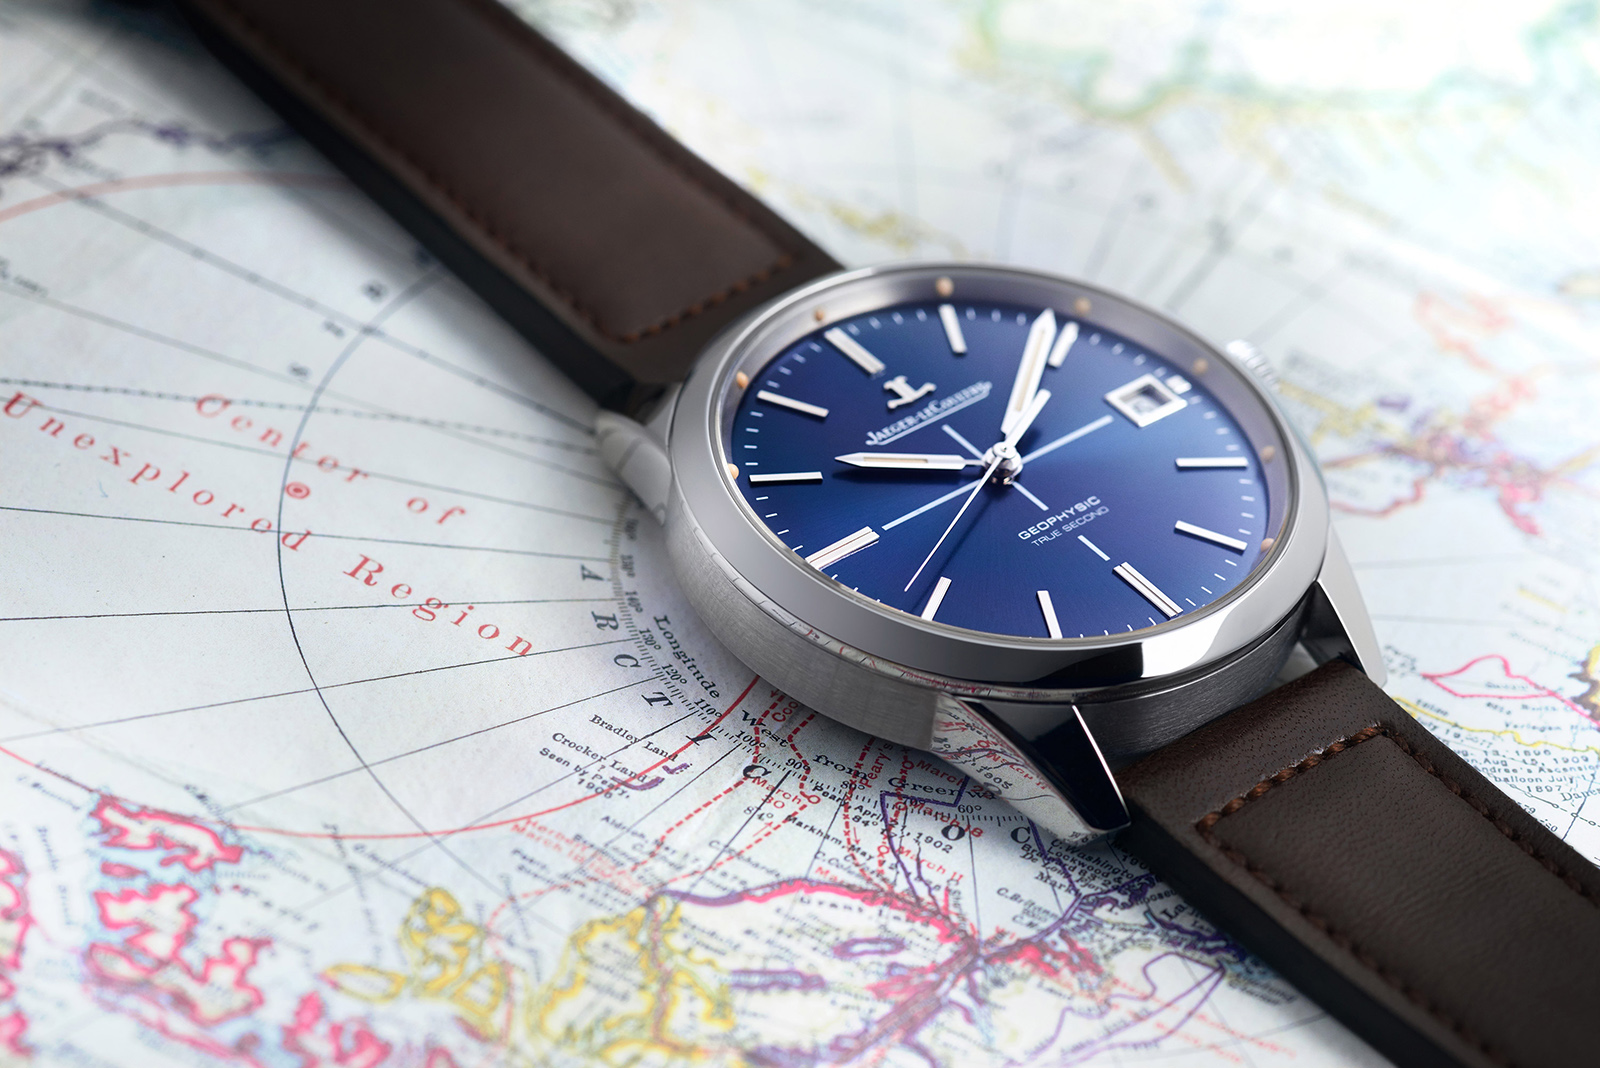 Jaeger-LeCoultre Geophysic True Second Limited Edition 3